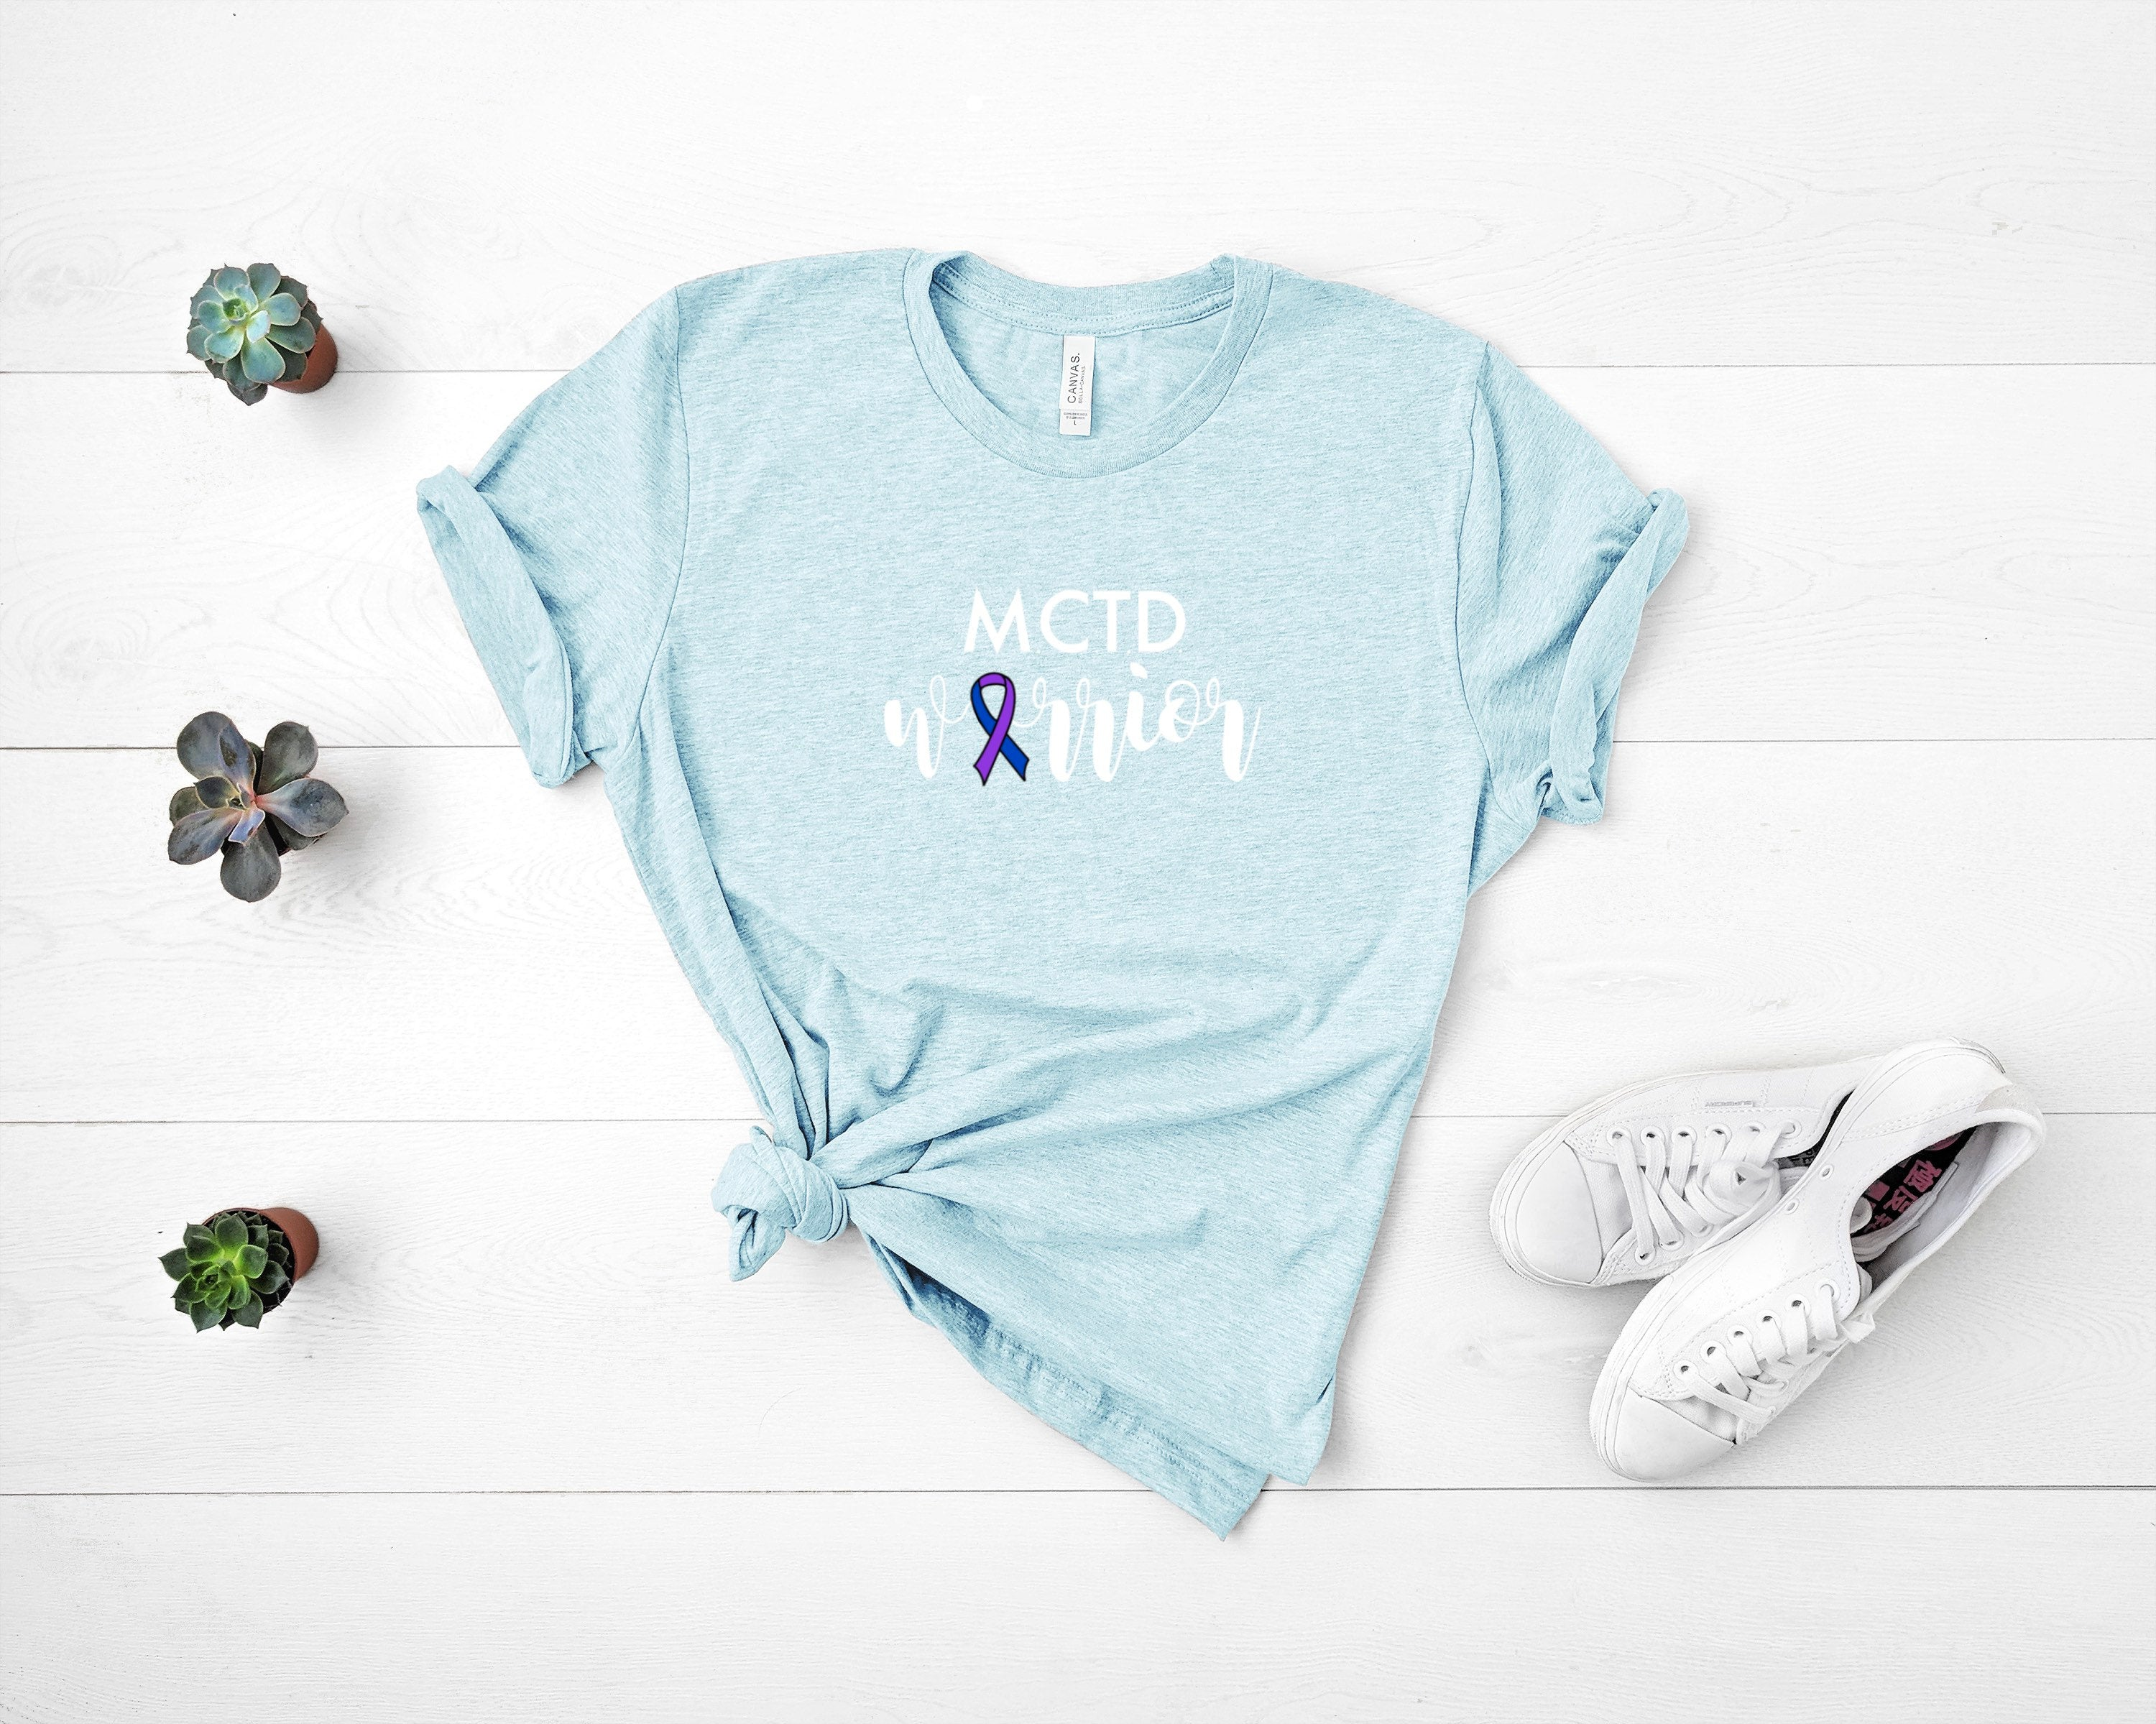 MCTD Warrior T-Shirt, mixed connective tissue disease